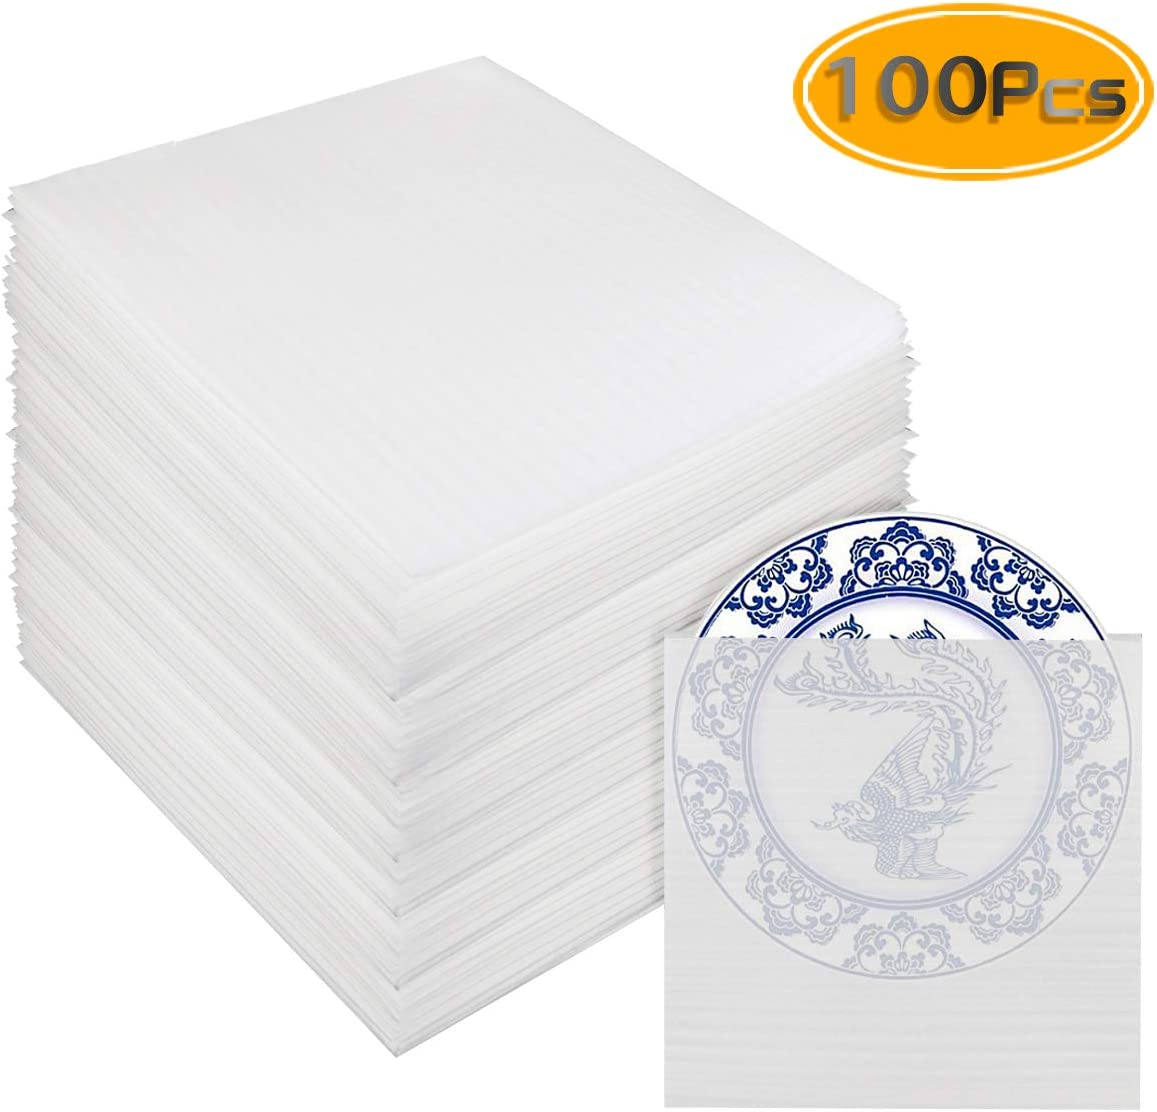 Porcelain /& Fragile Items,Moving Storage Packing and Shipping Supplies Glasses UPlama 100PCS Foam Wraps,Foam Wrap Cup Pouches 12 x 12.2,0.5mm Thick,Foam Wrap Sheets Cushioning for Protect Dishes